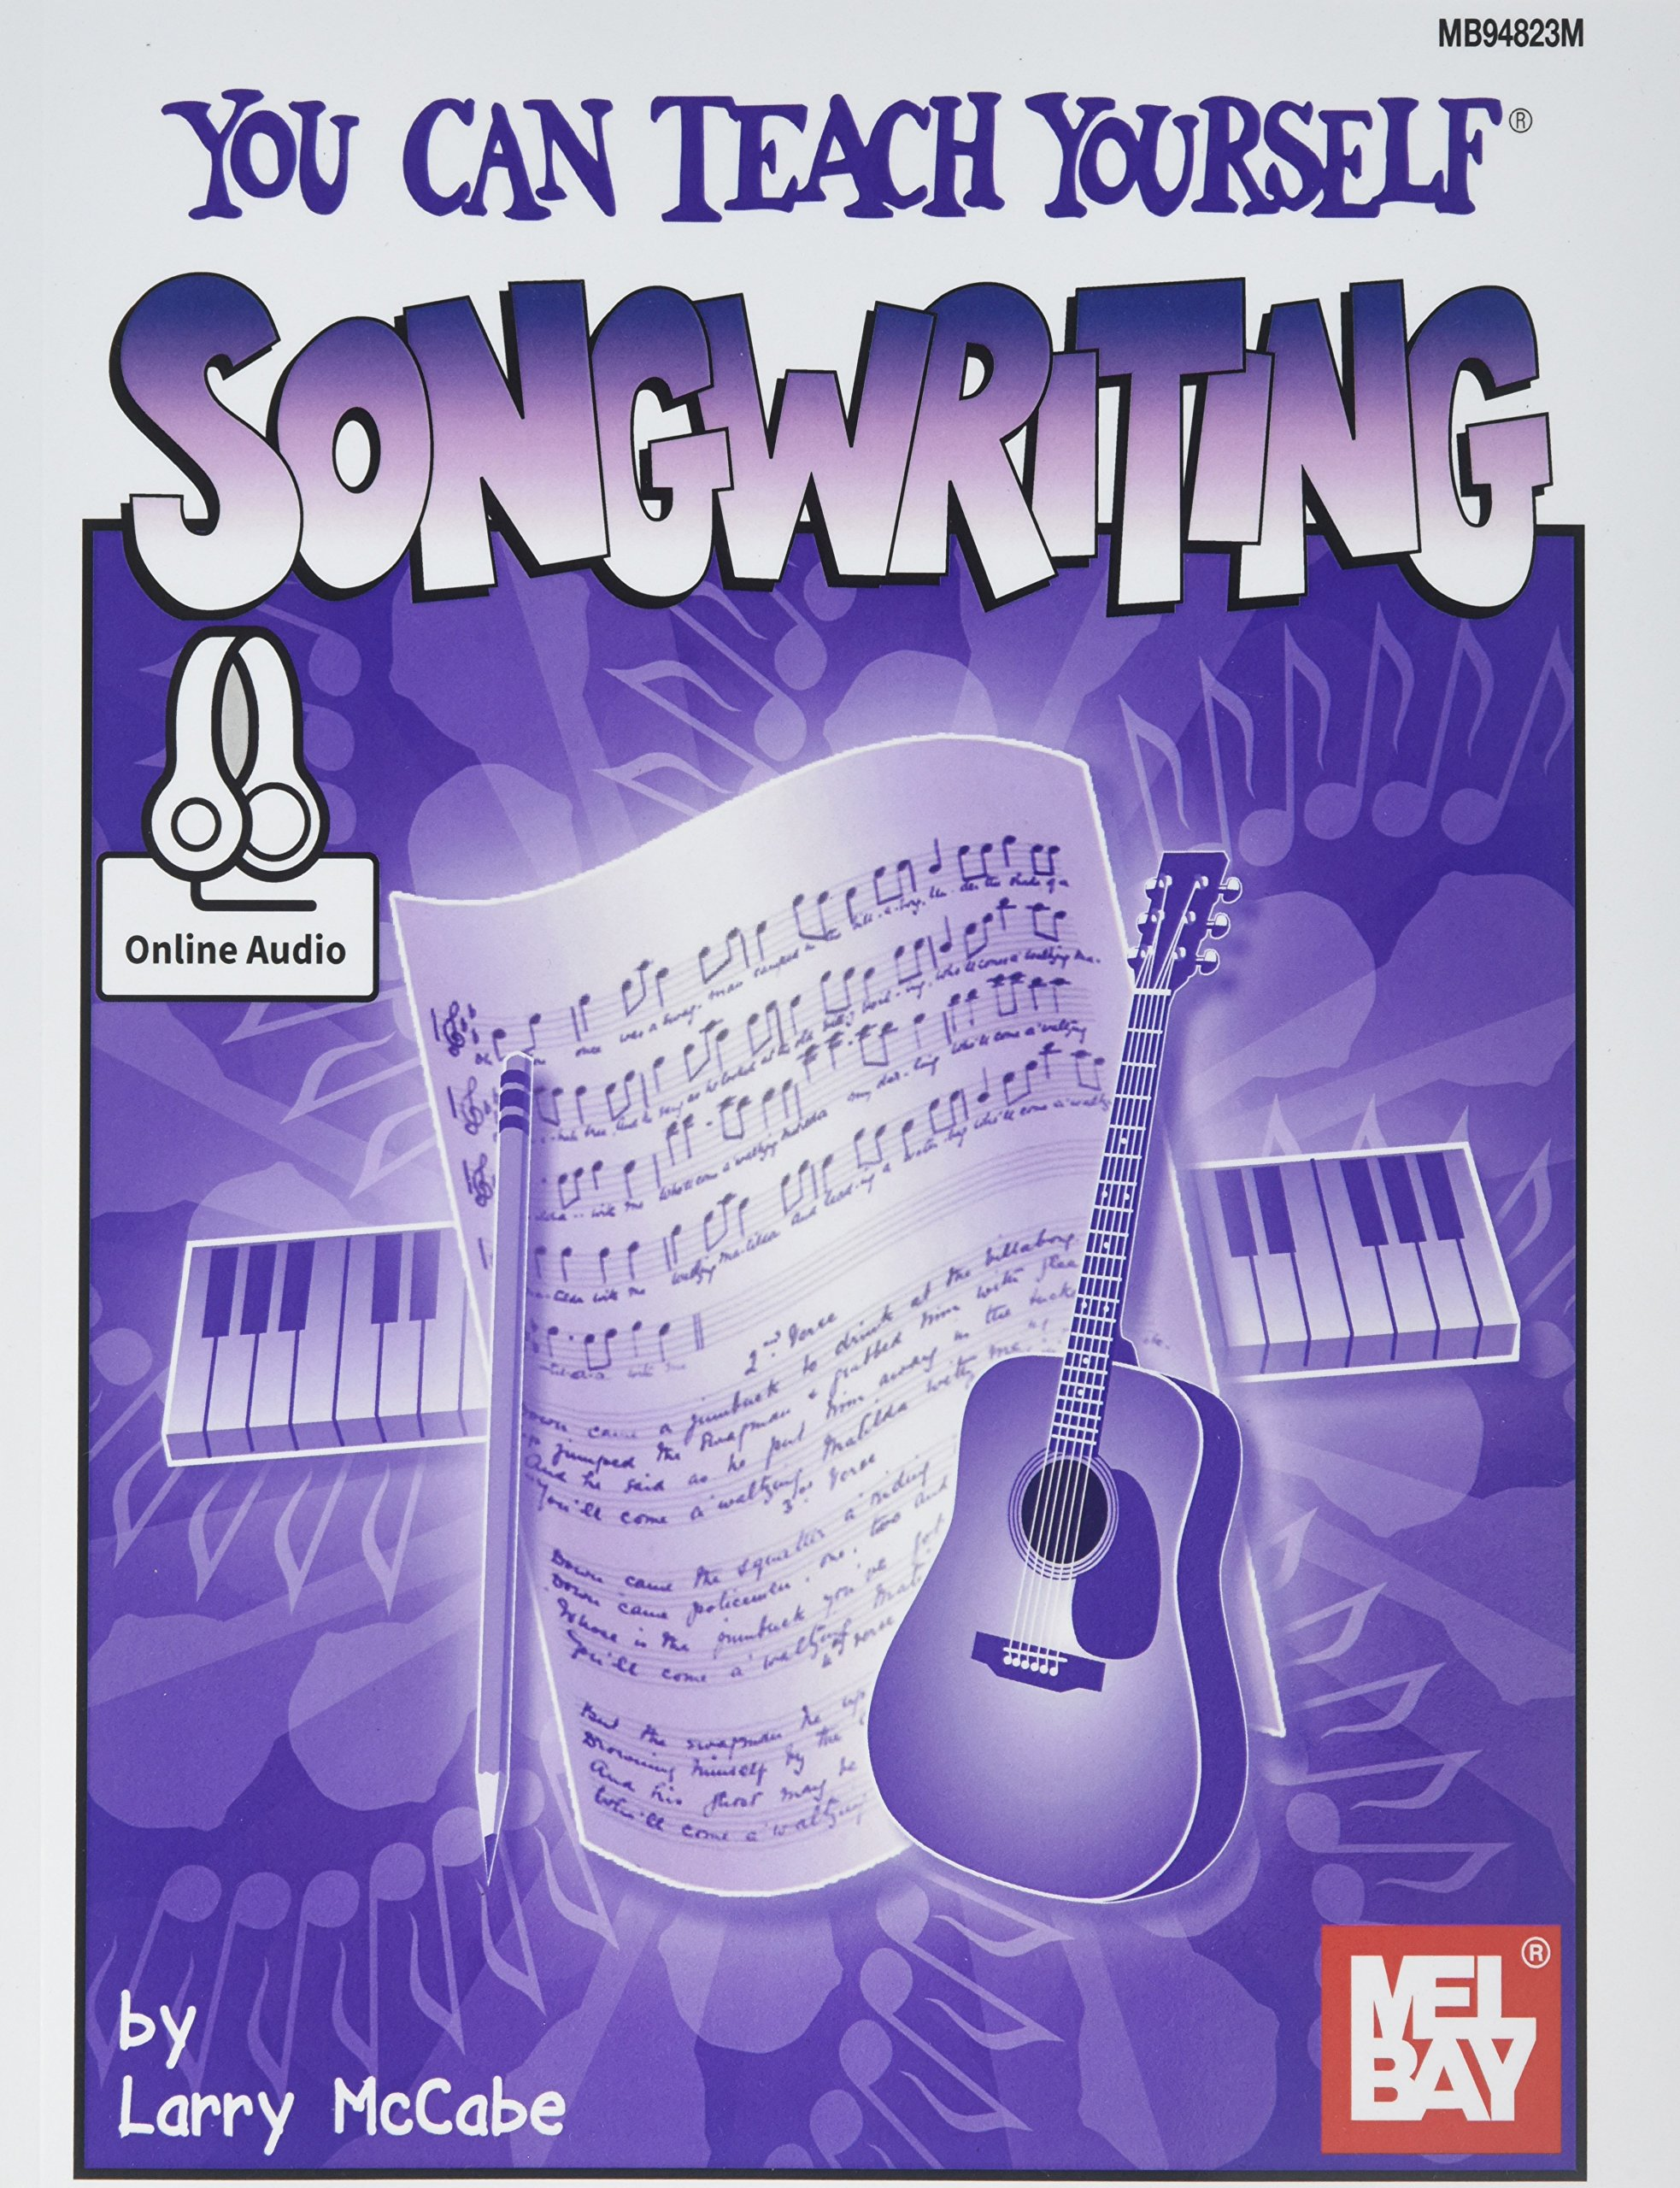 You Can Teach Yourself Songwriting (You Can Teach Yourself Series) PDF